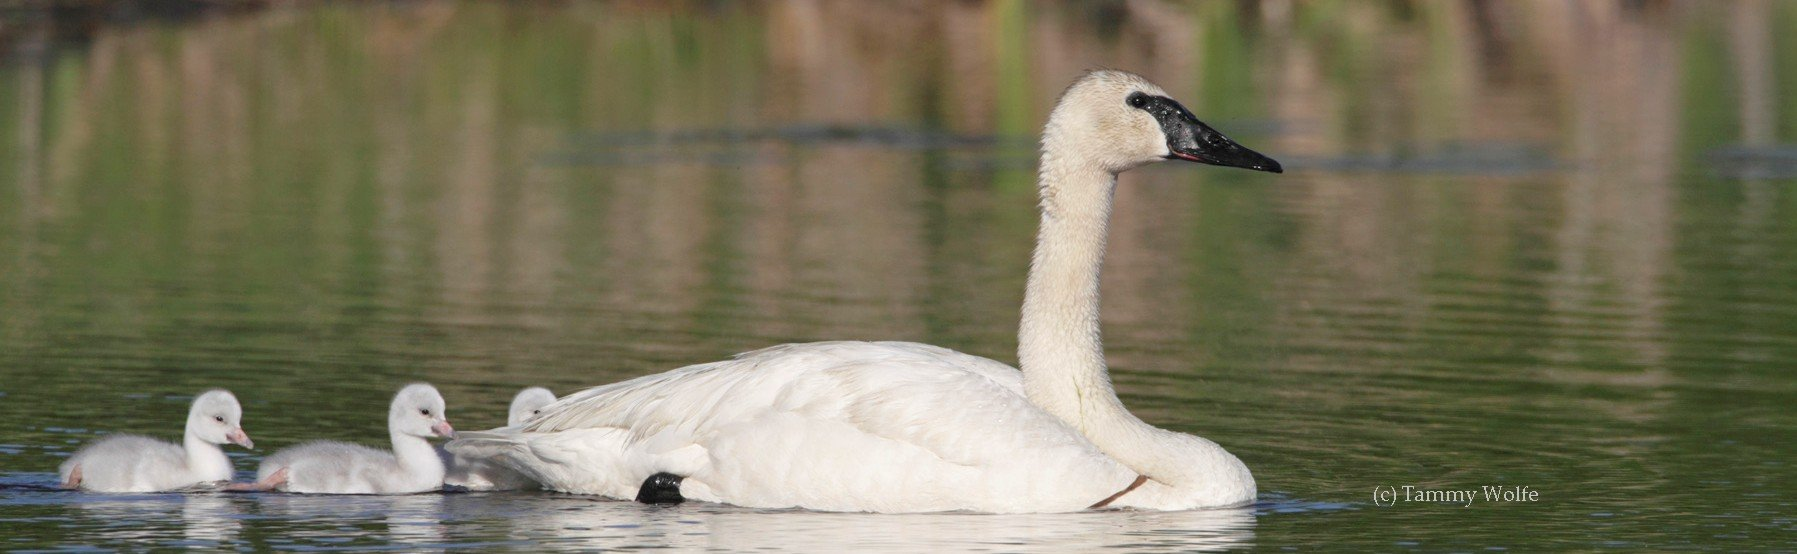 Gfits in your will to TTSS will make sure future generations will know and see the beauty of Trumpeter Swans